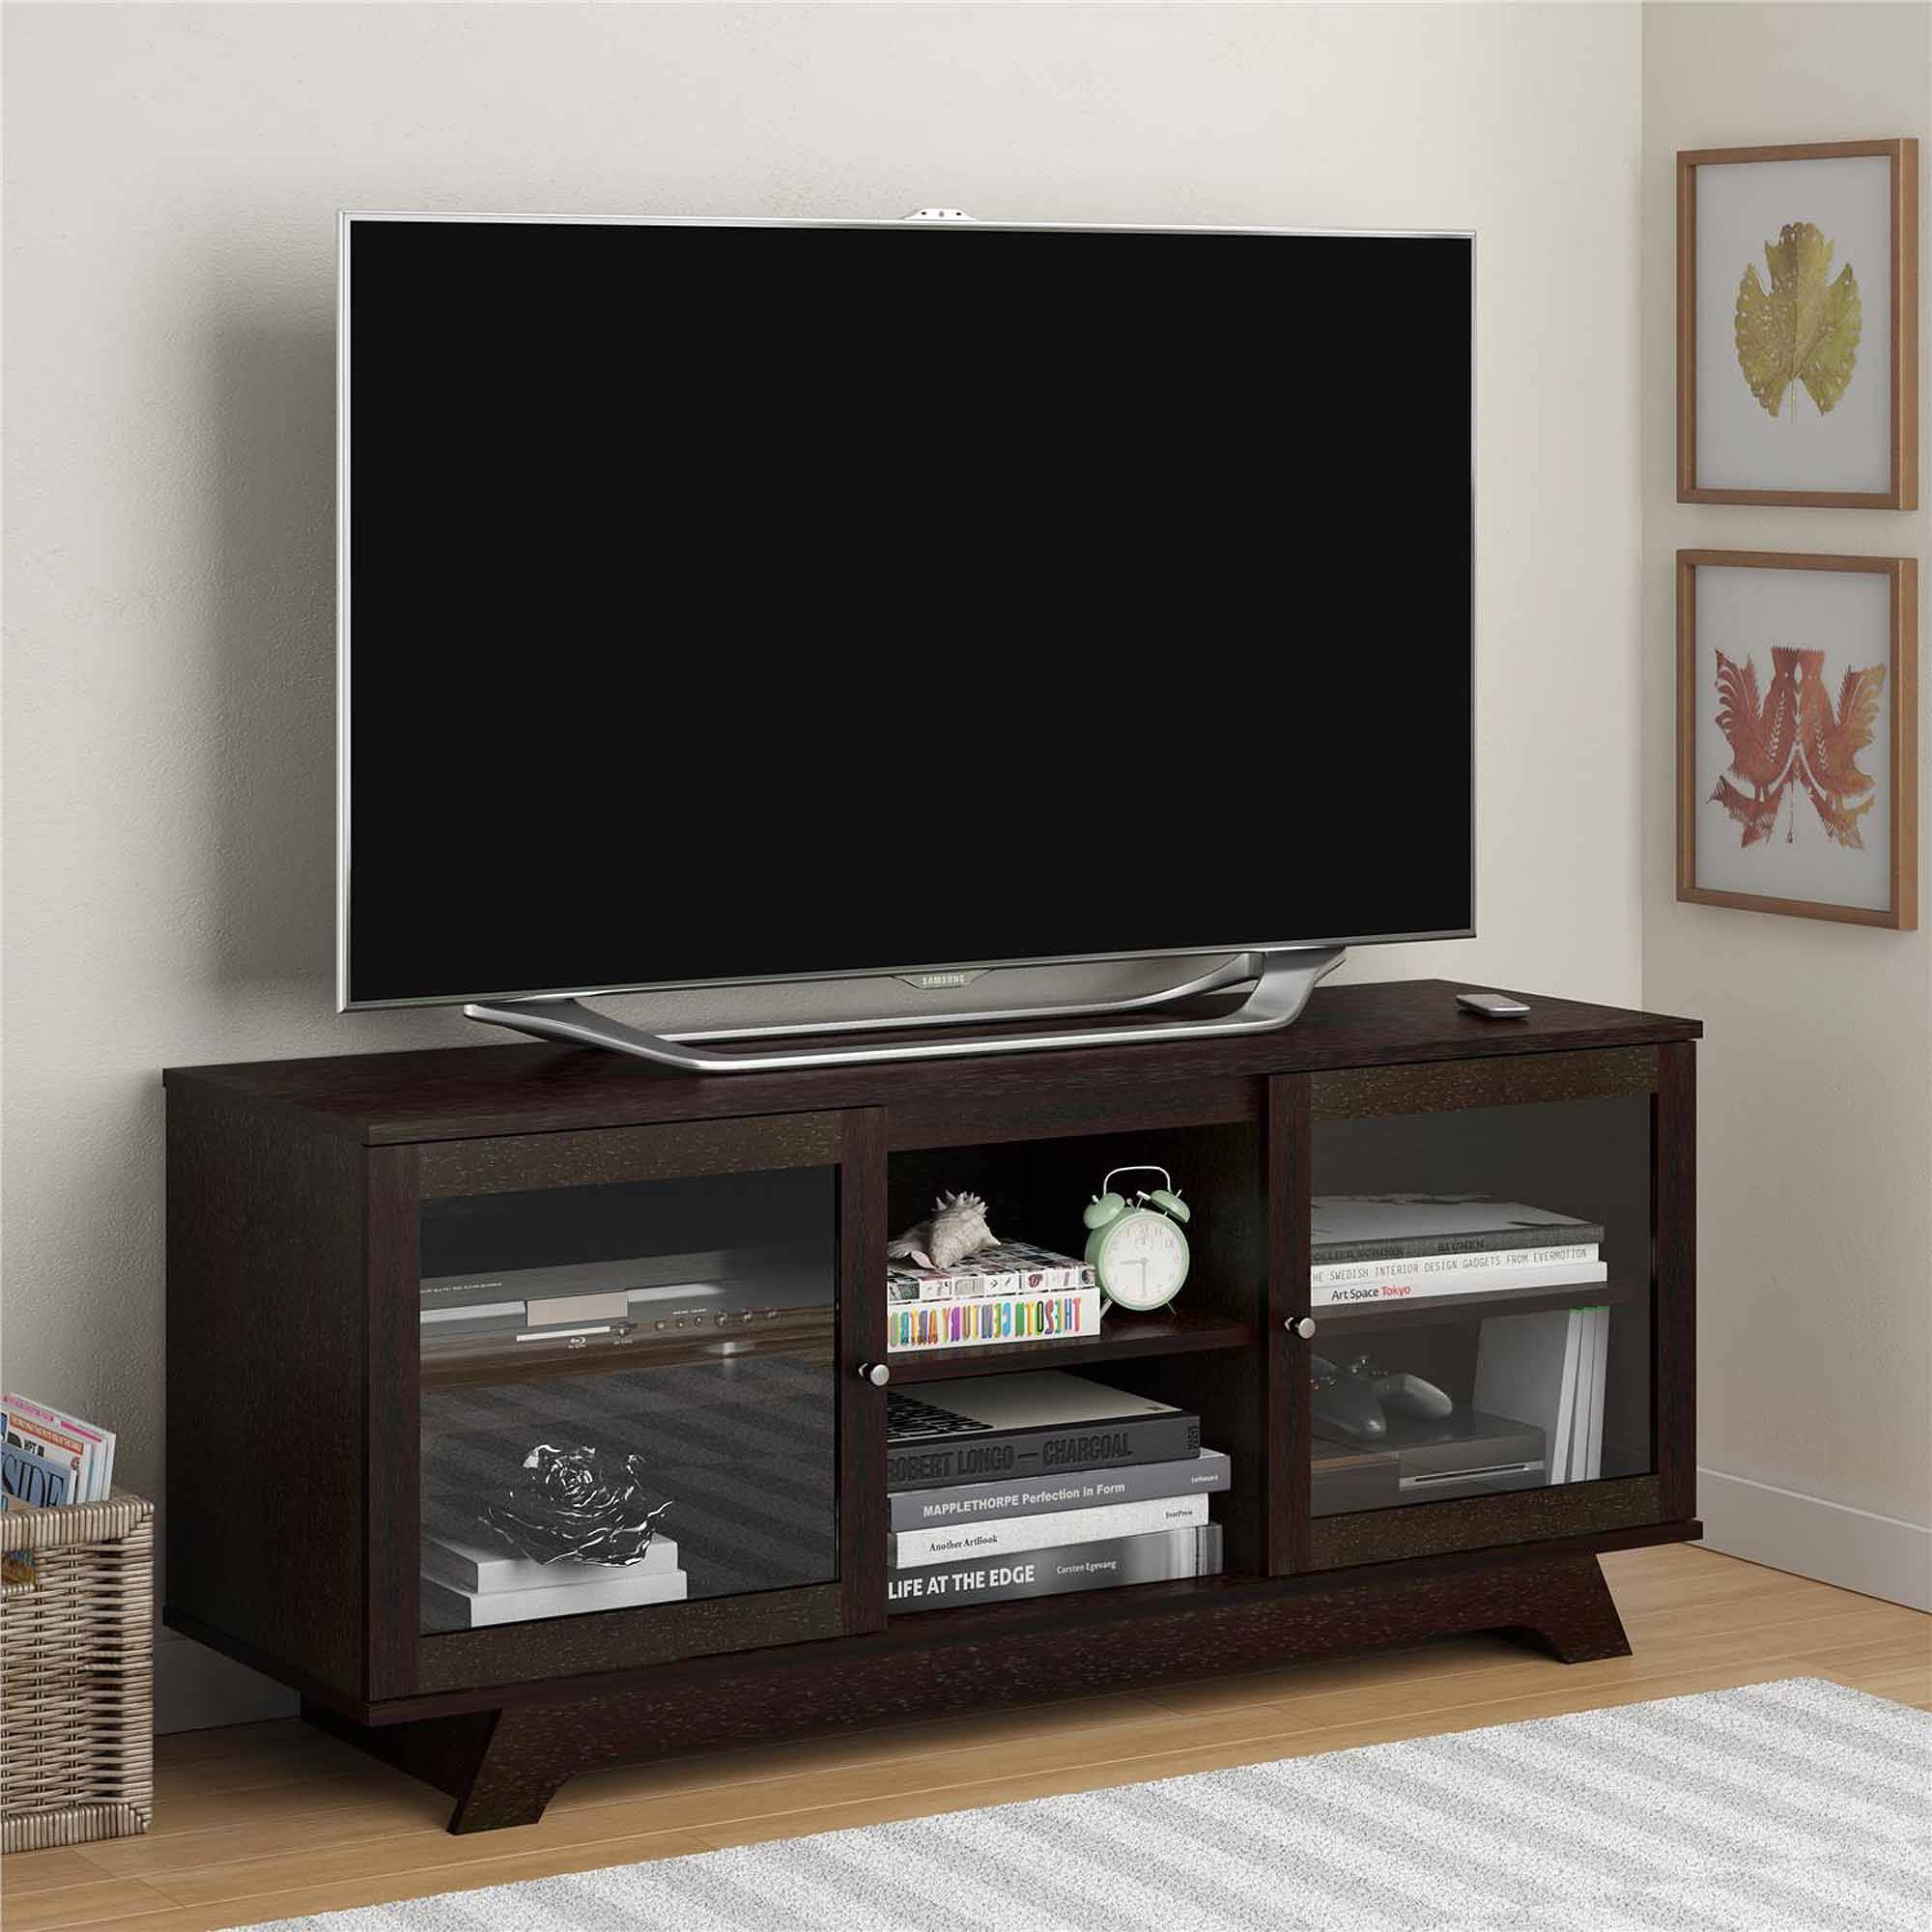 Tv Stands & Entertainment Centers – Walmart For Open Shelf Tv Stands (View 13 of 15)